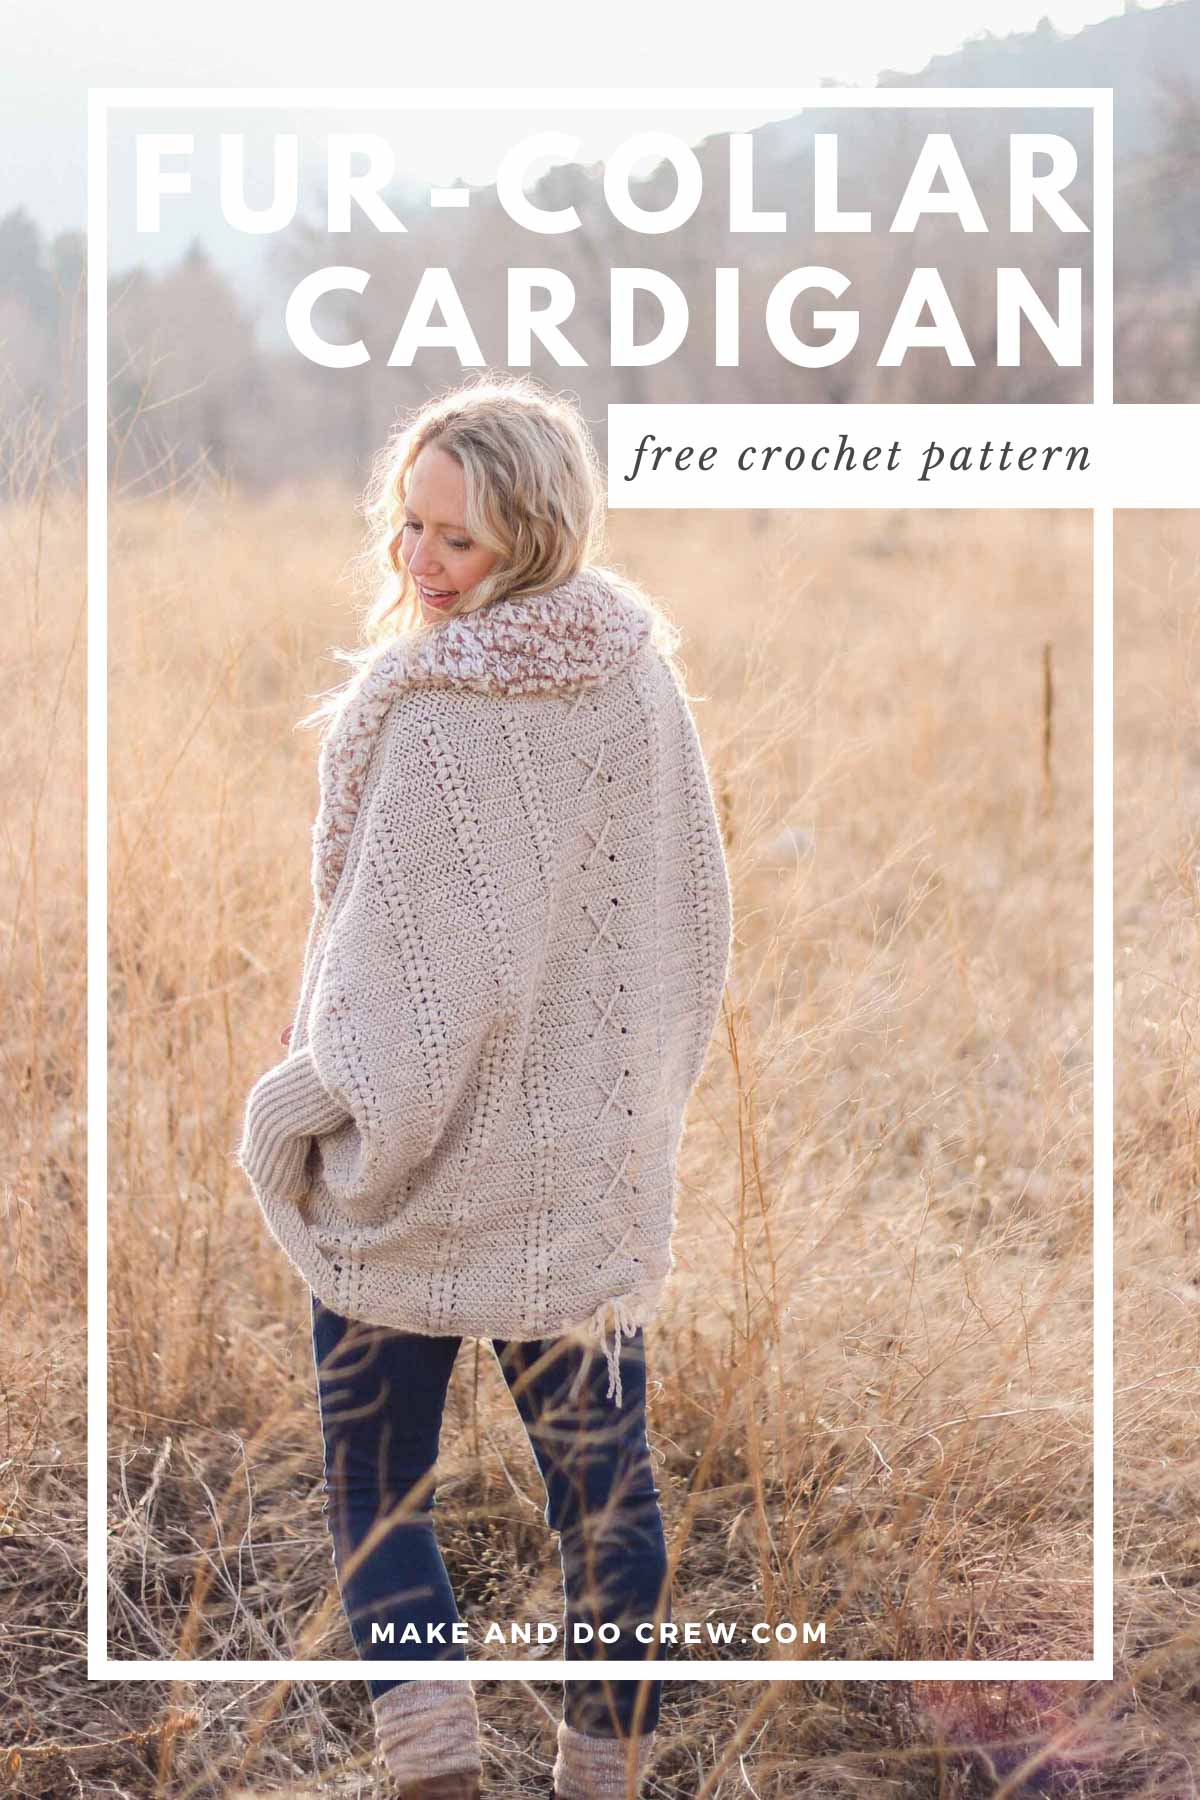 Woman standing a field of natural grasses wearing a crochet cardigan sweater with a lace rope detail running down the back.